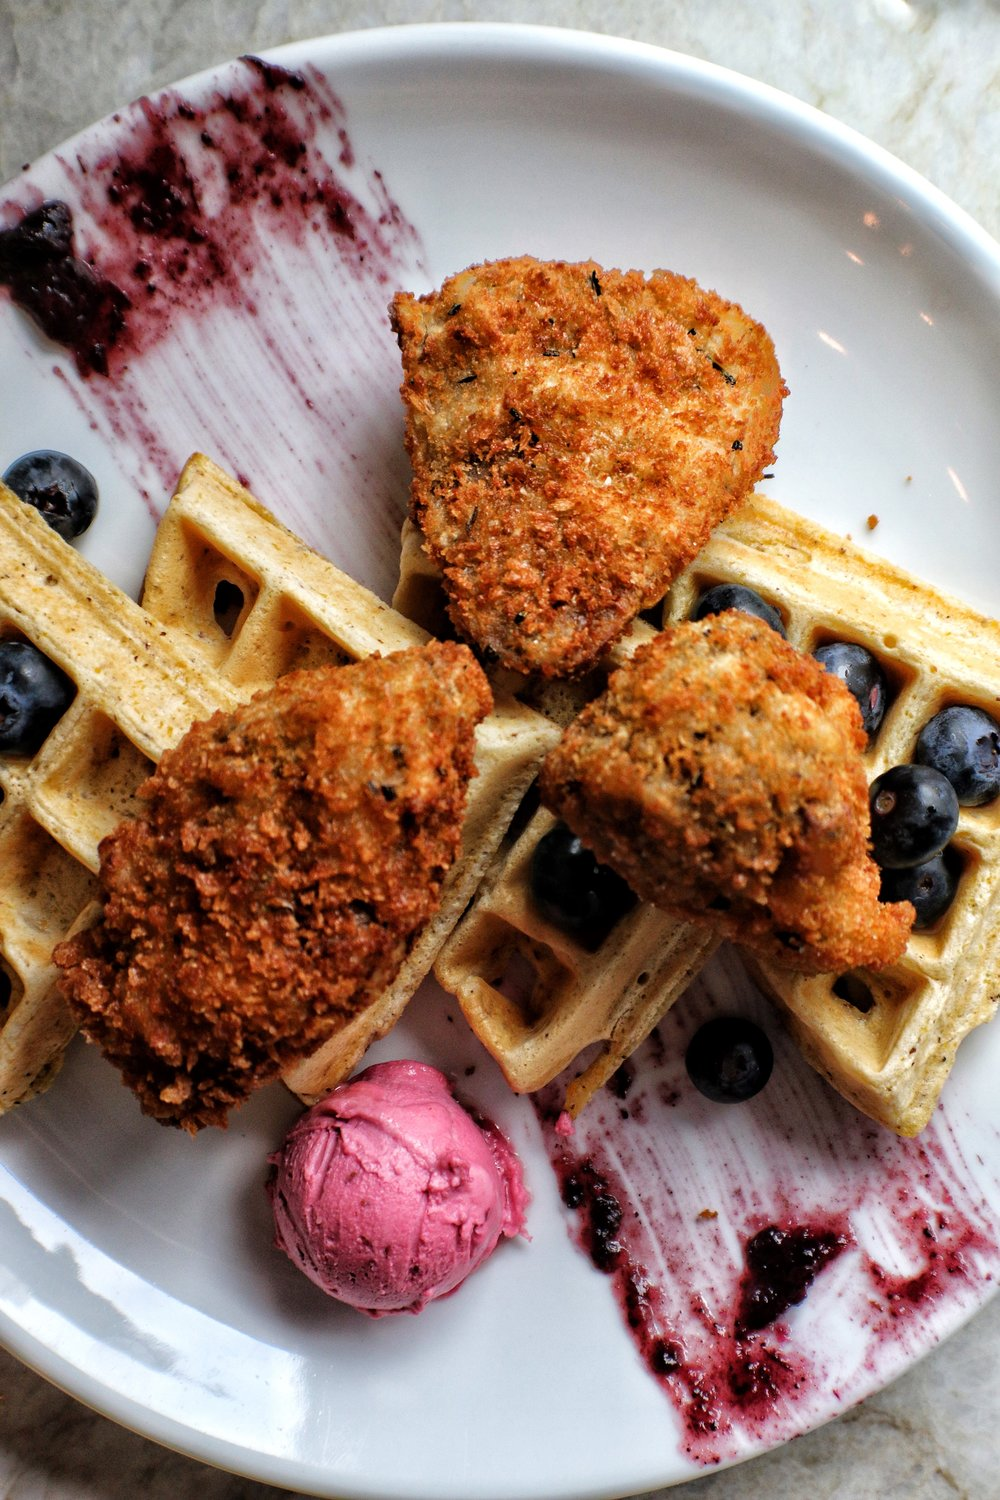 Seitan & Waffles  rosemary breaded seitan, malted waffle, fresh berries, raspberry butter, maple syrup 15